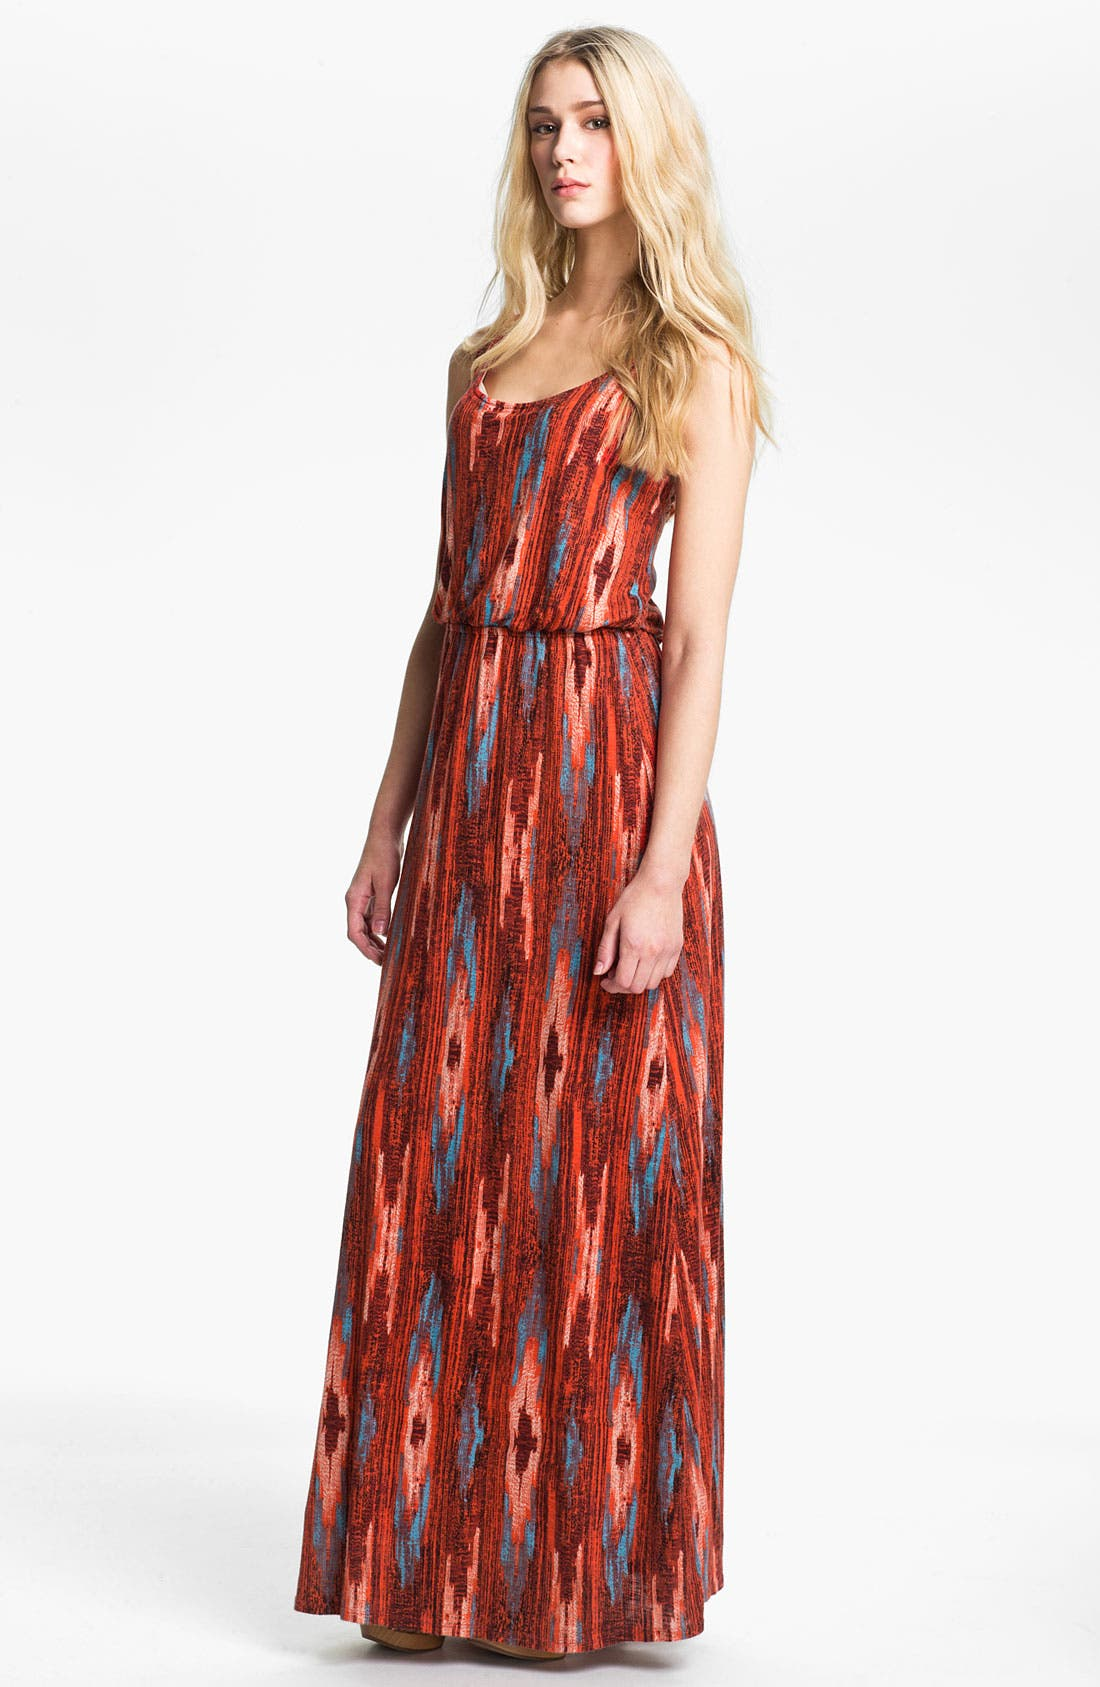 Main Image - Ella Moss 'Santa Fe' Print Maxi Dress